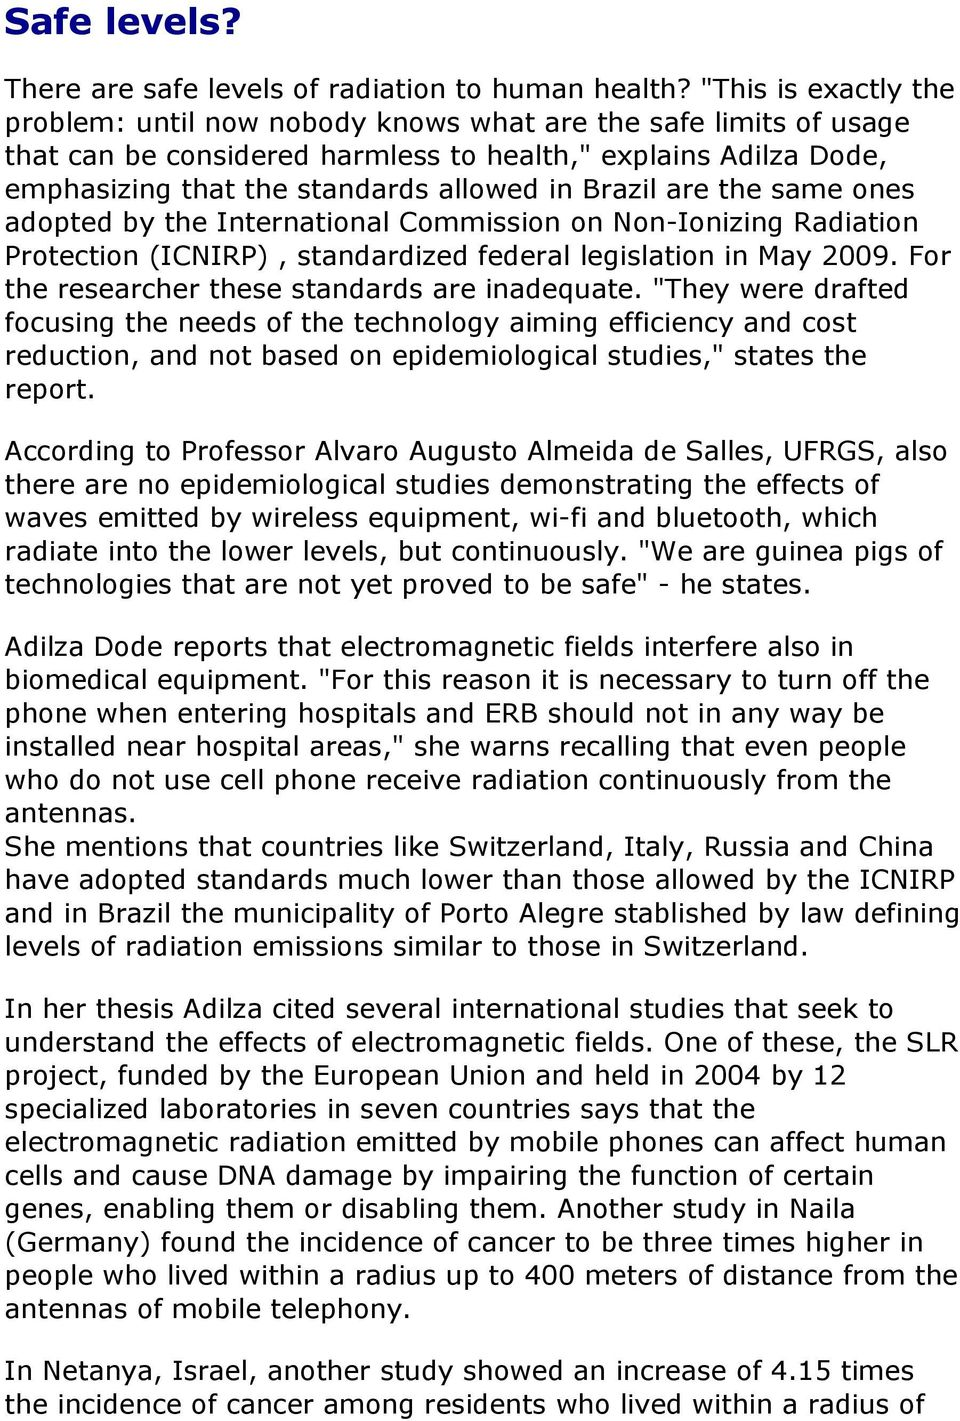 Brazil are the same ones adopted by the International Commission on Non-Ionizing Radiation Protection (ICNIRP), standardized federal legislation in May 2009.